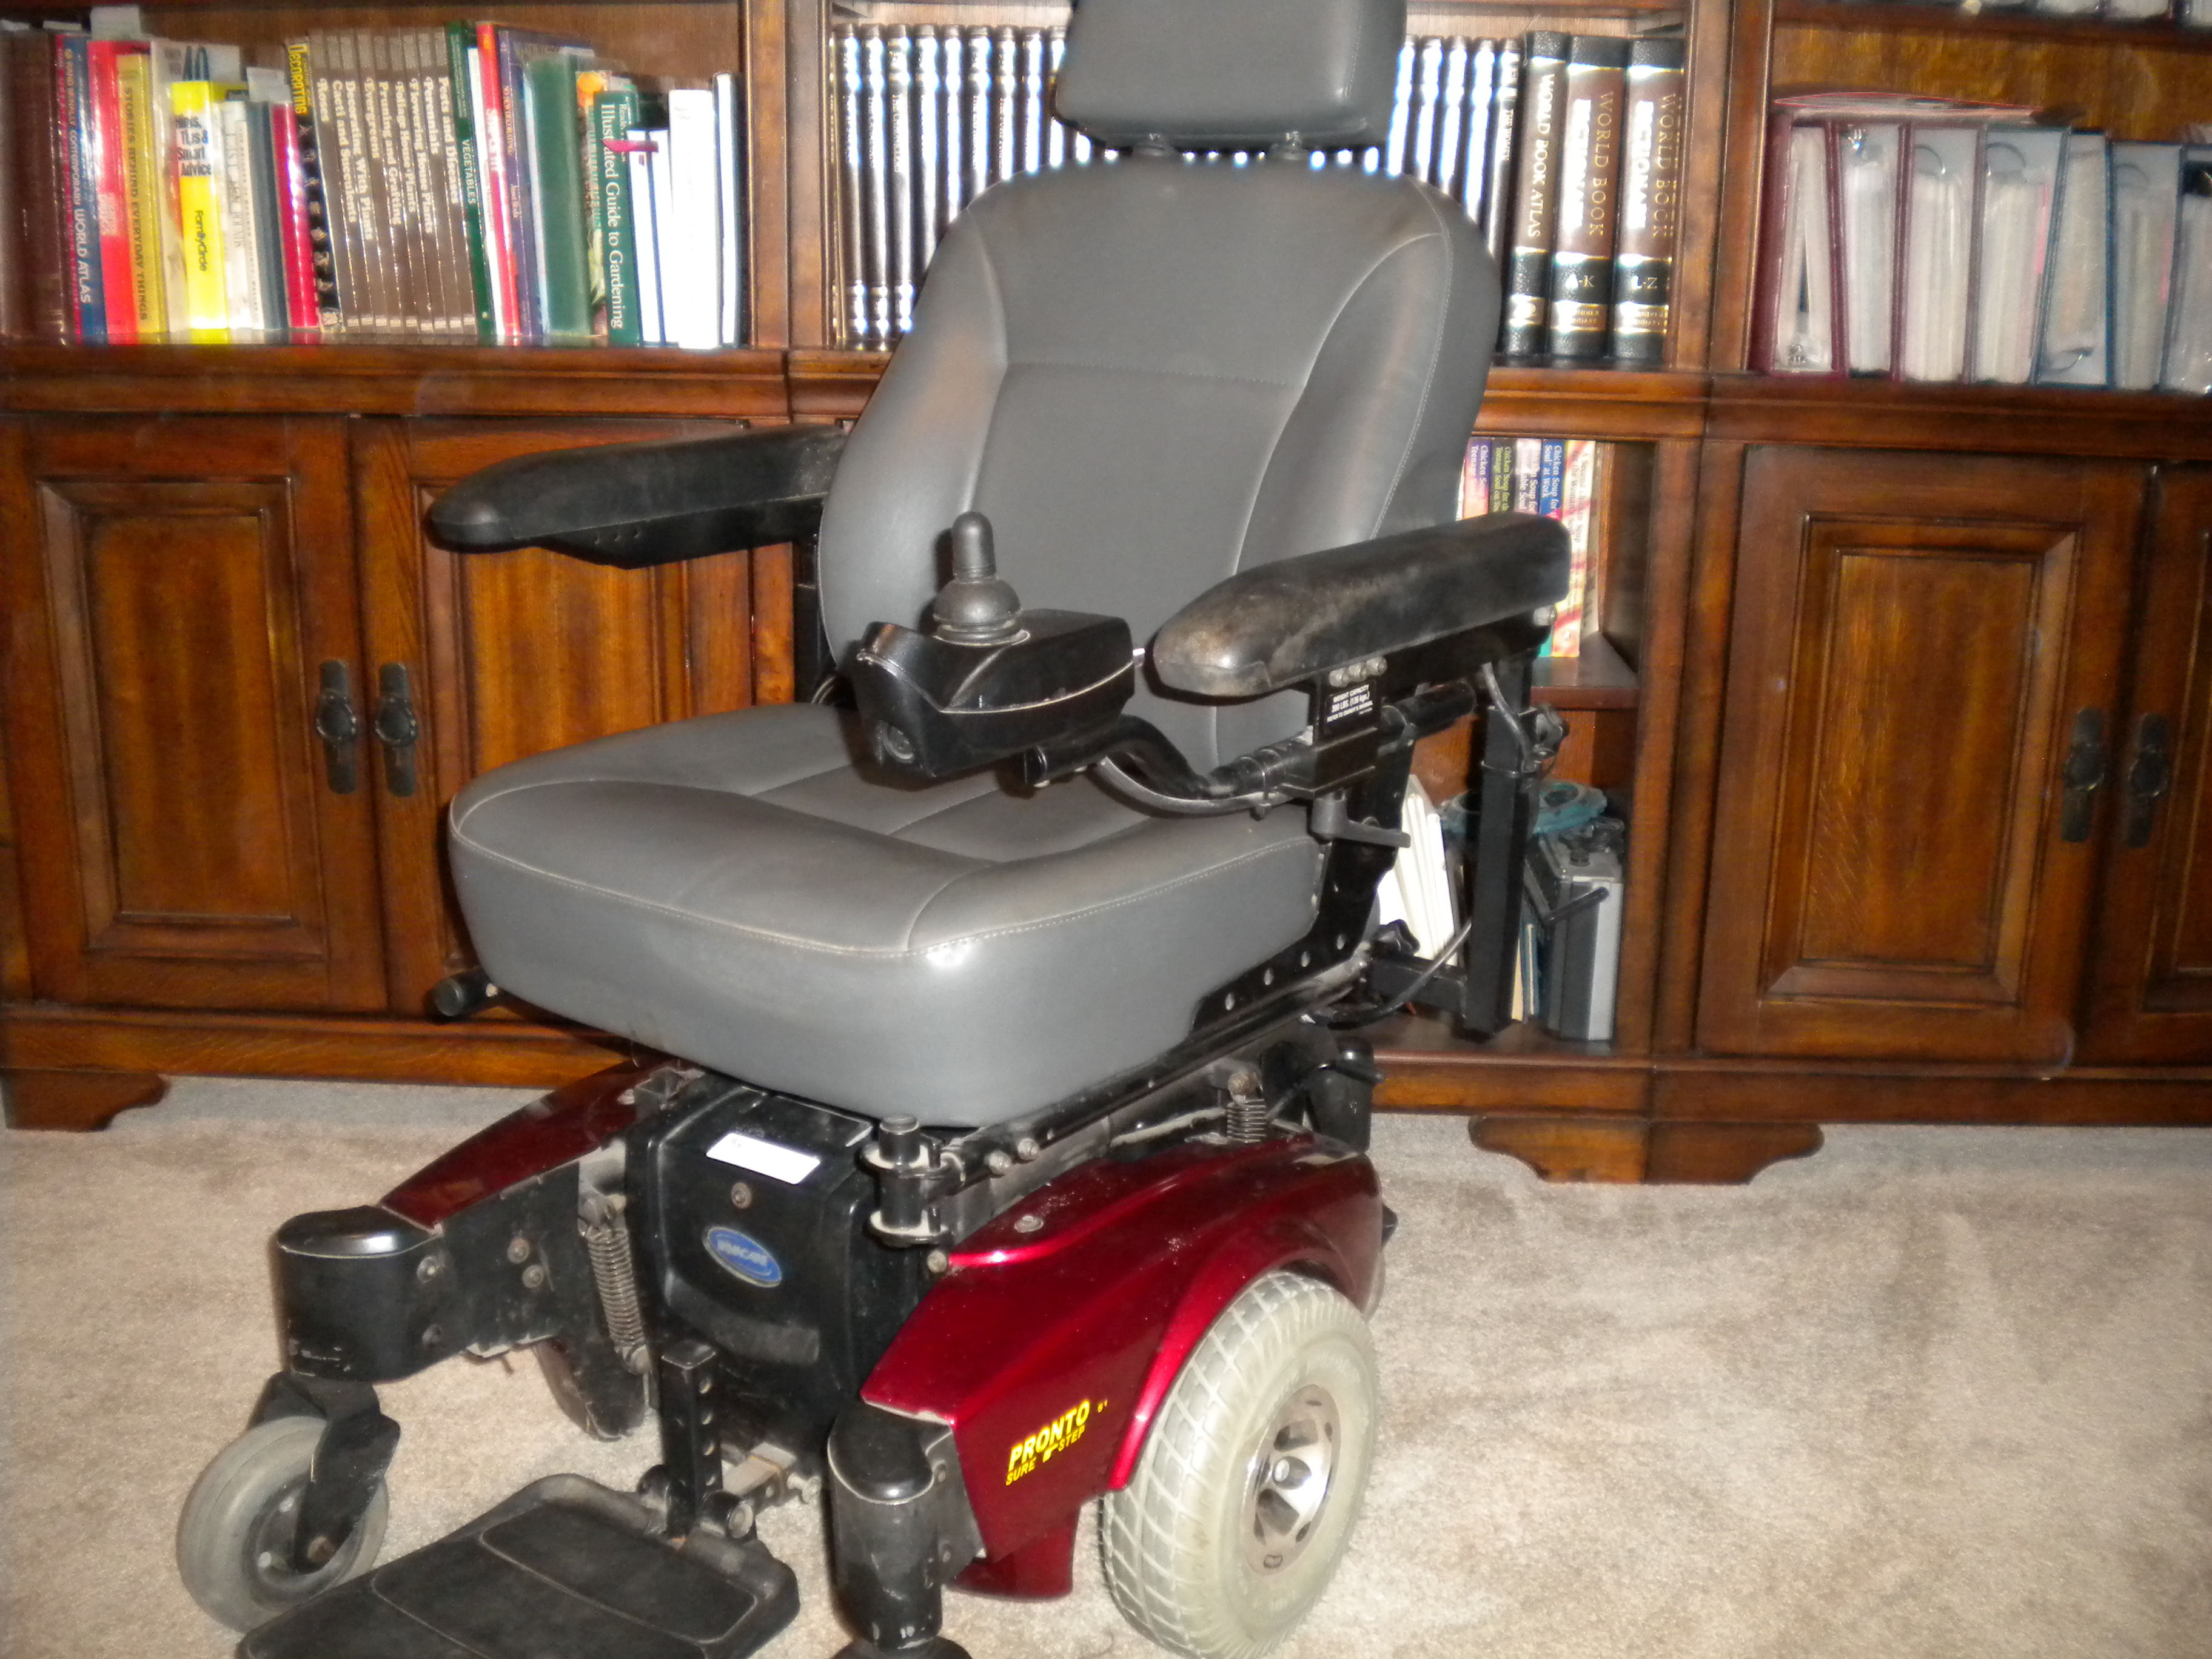 Power Chair image 1